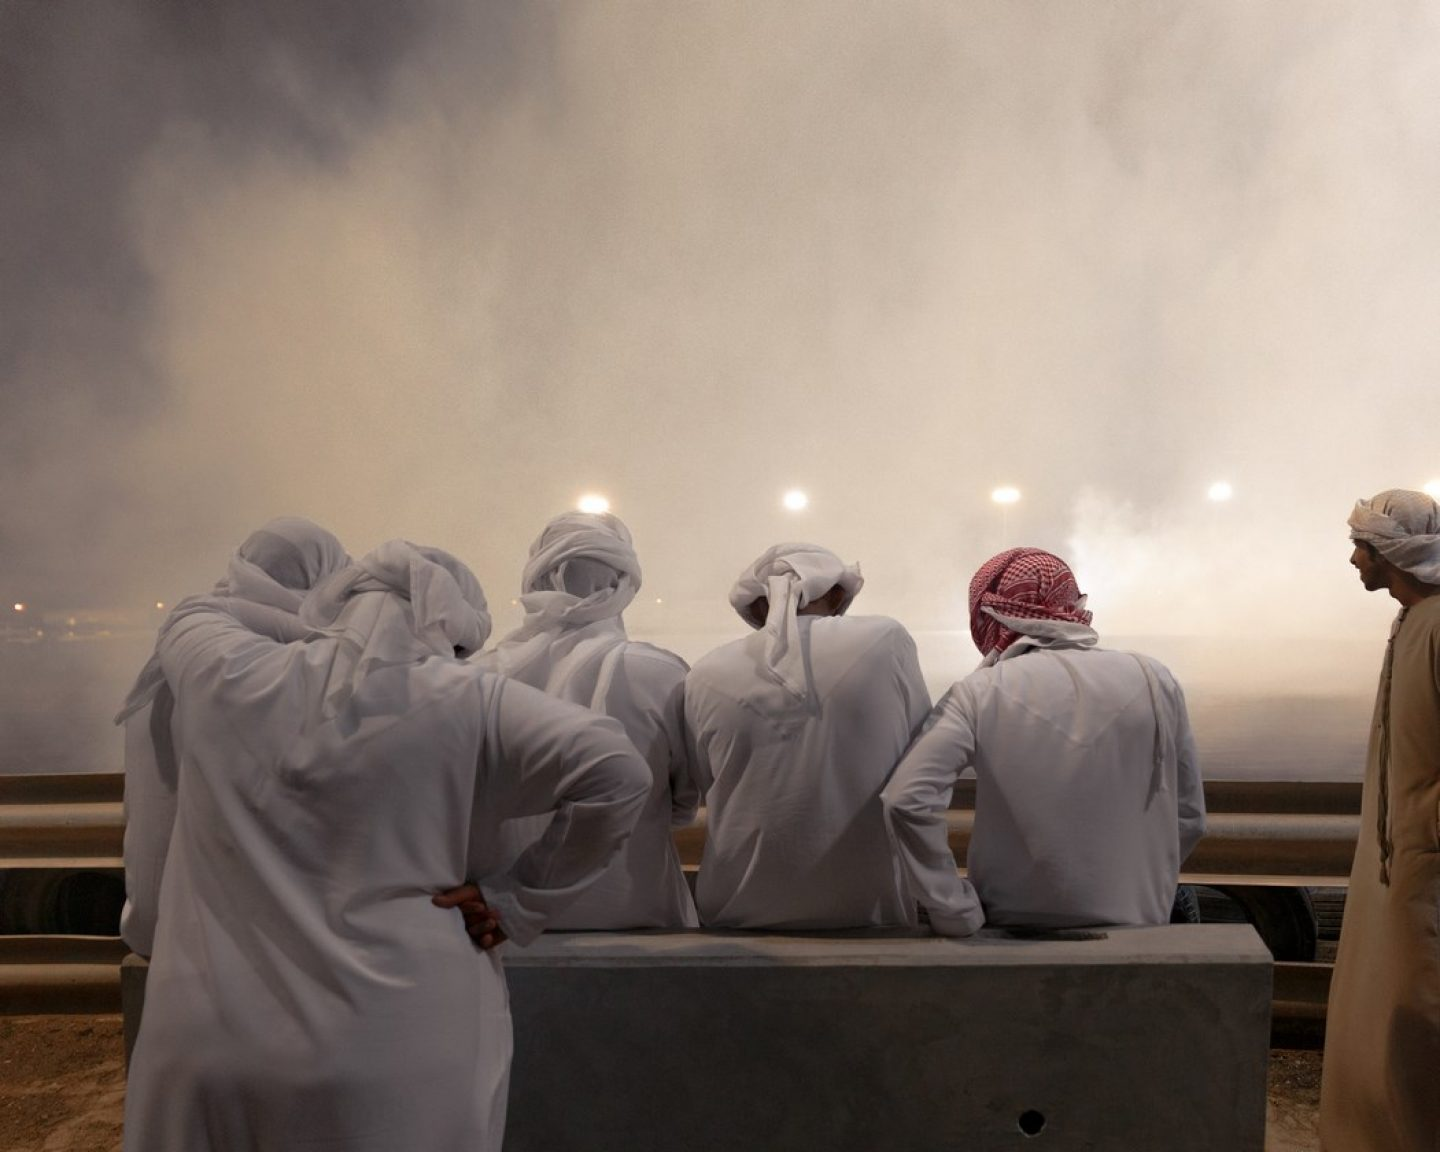 Rubber smoke fills the air at a contest in Umm Al Quwain, UAE.